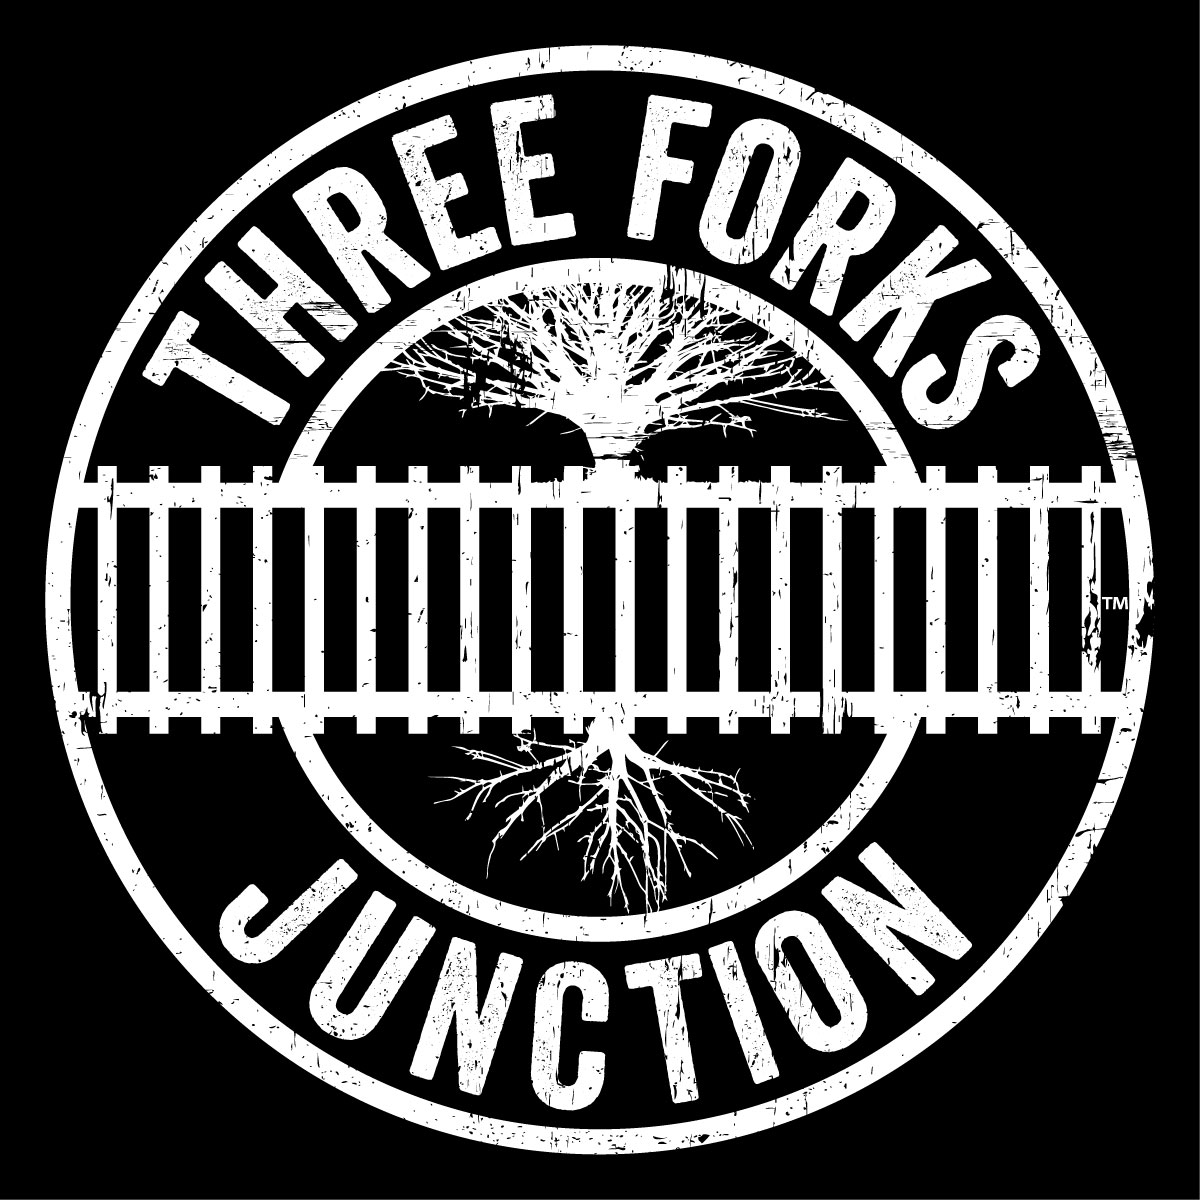 THREE FORKS JUNCTION